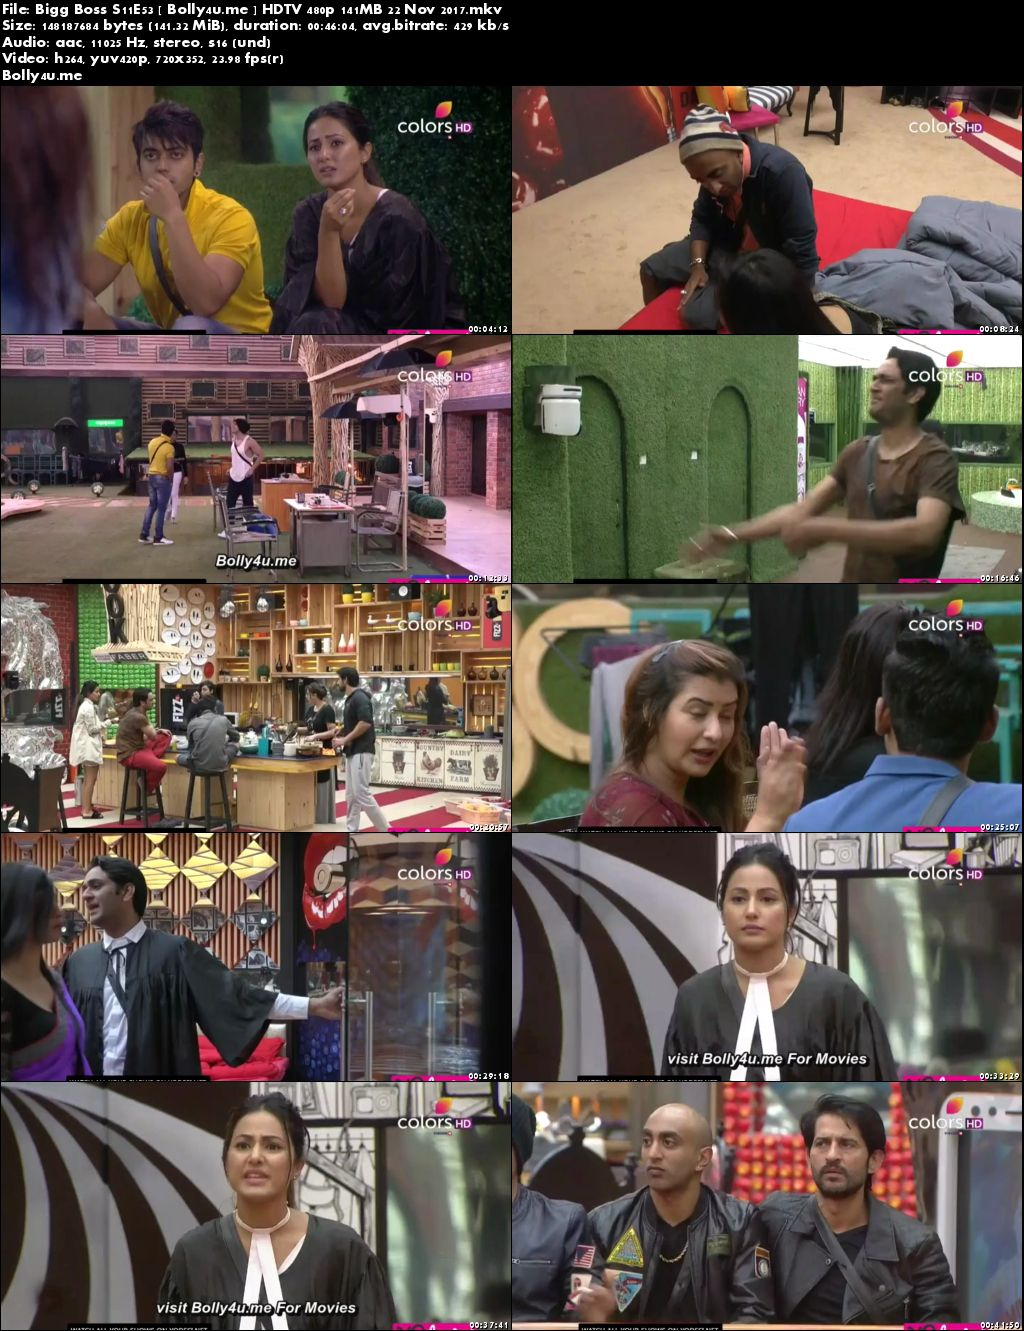 Bigg Boss S11E53 HDTV 480p 140MB 22 November 2017 Download